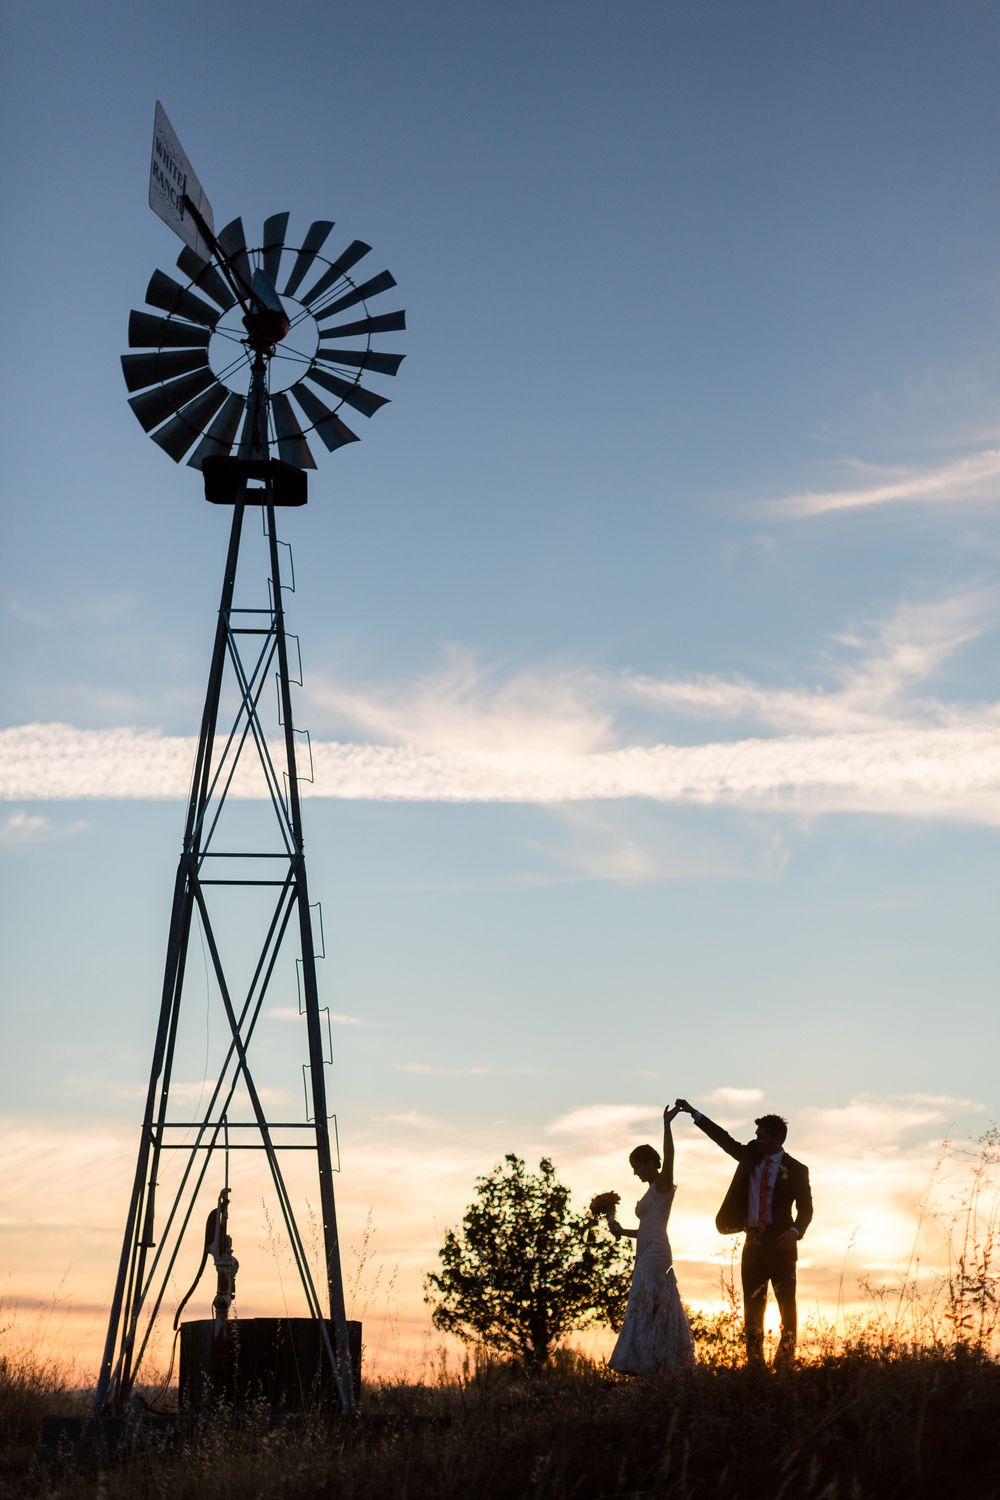 wedding locations north california%0A Bride and Groom Portrait Silhouette Sunset Dancing Spin Windmill    WhiteRanchWedding  WindmillSpinNorthern CaliforniaSilhouetteDancing California